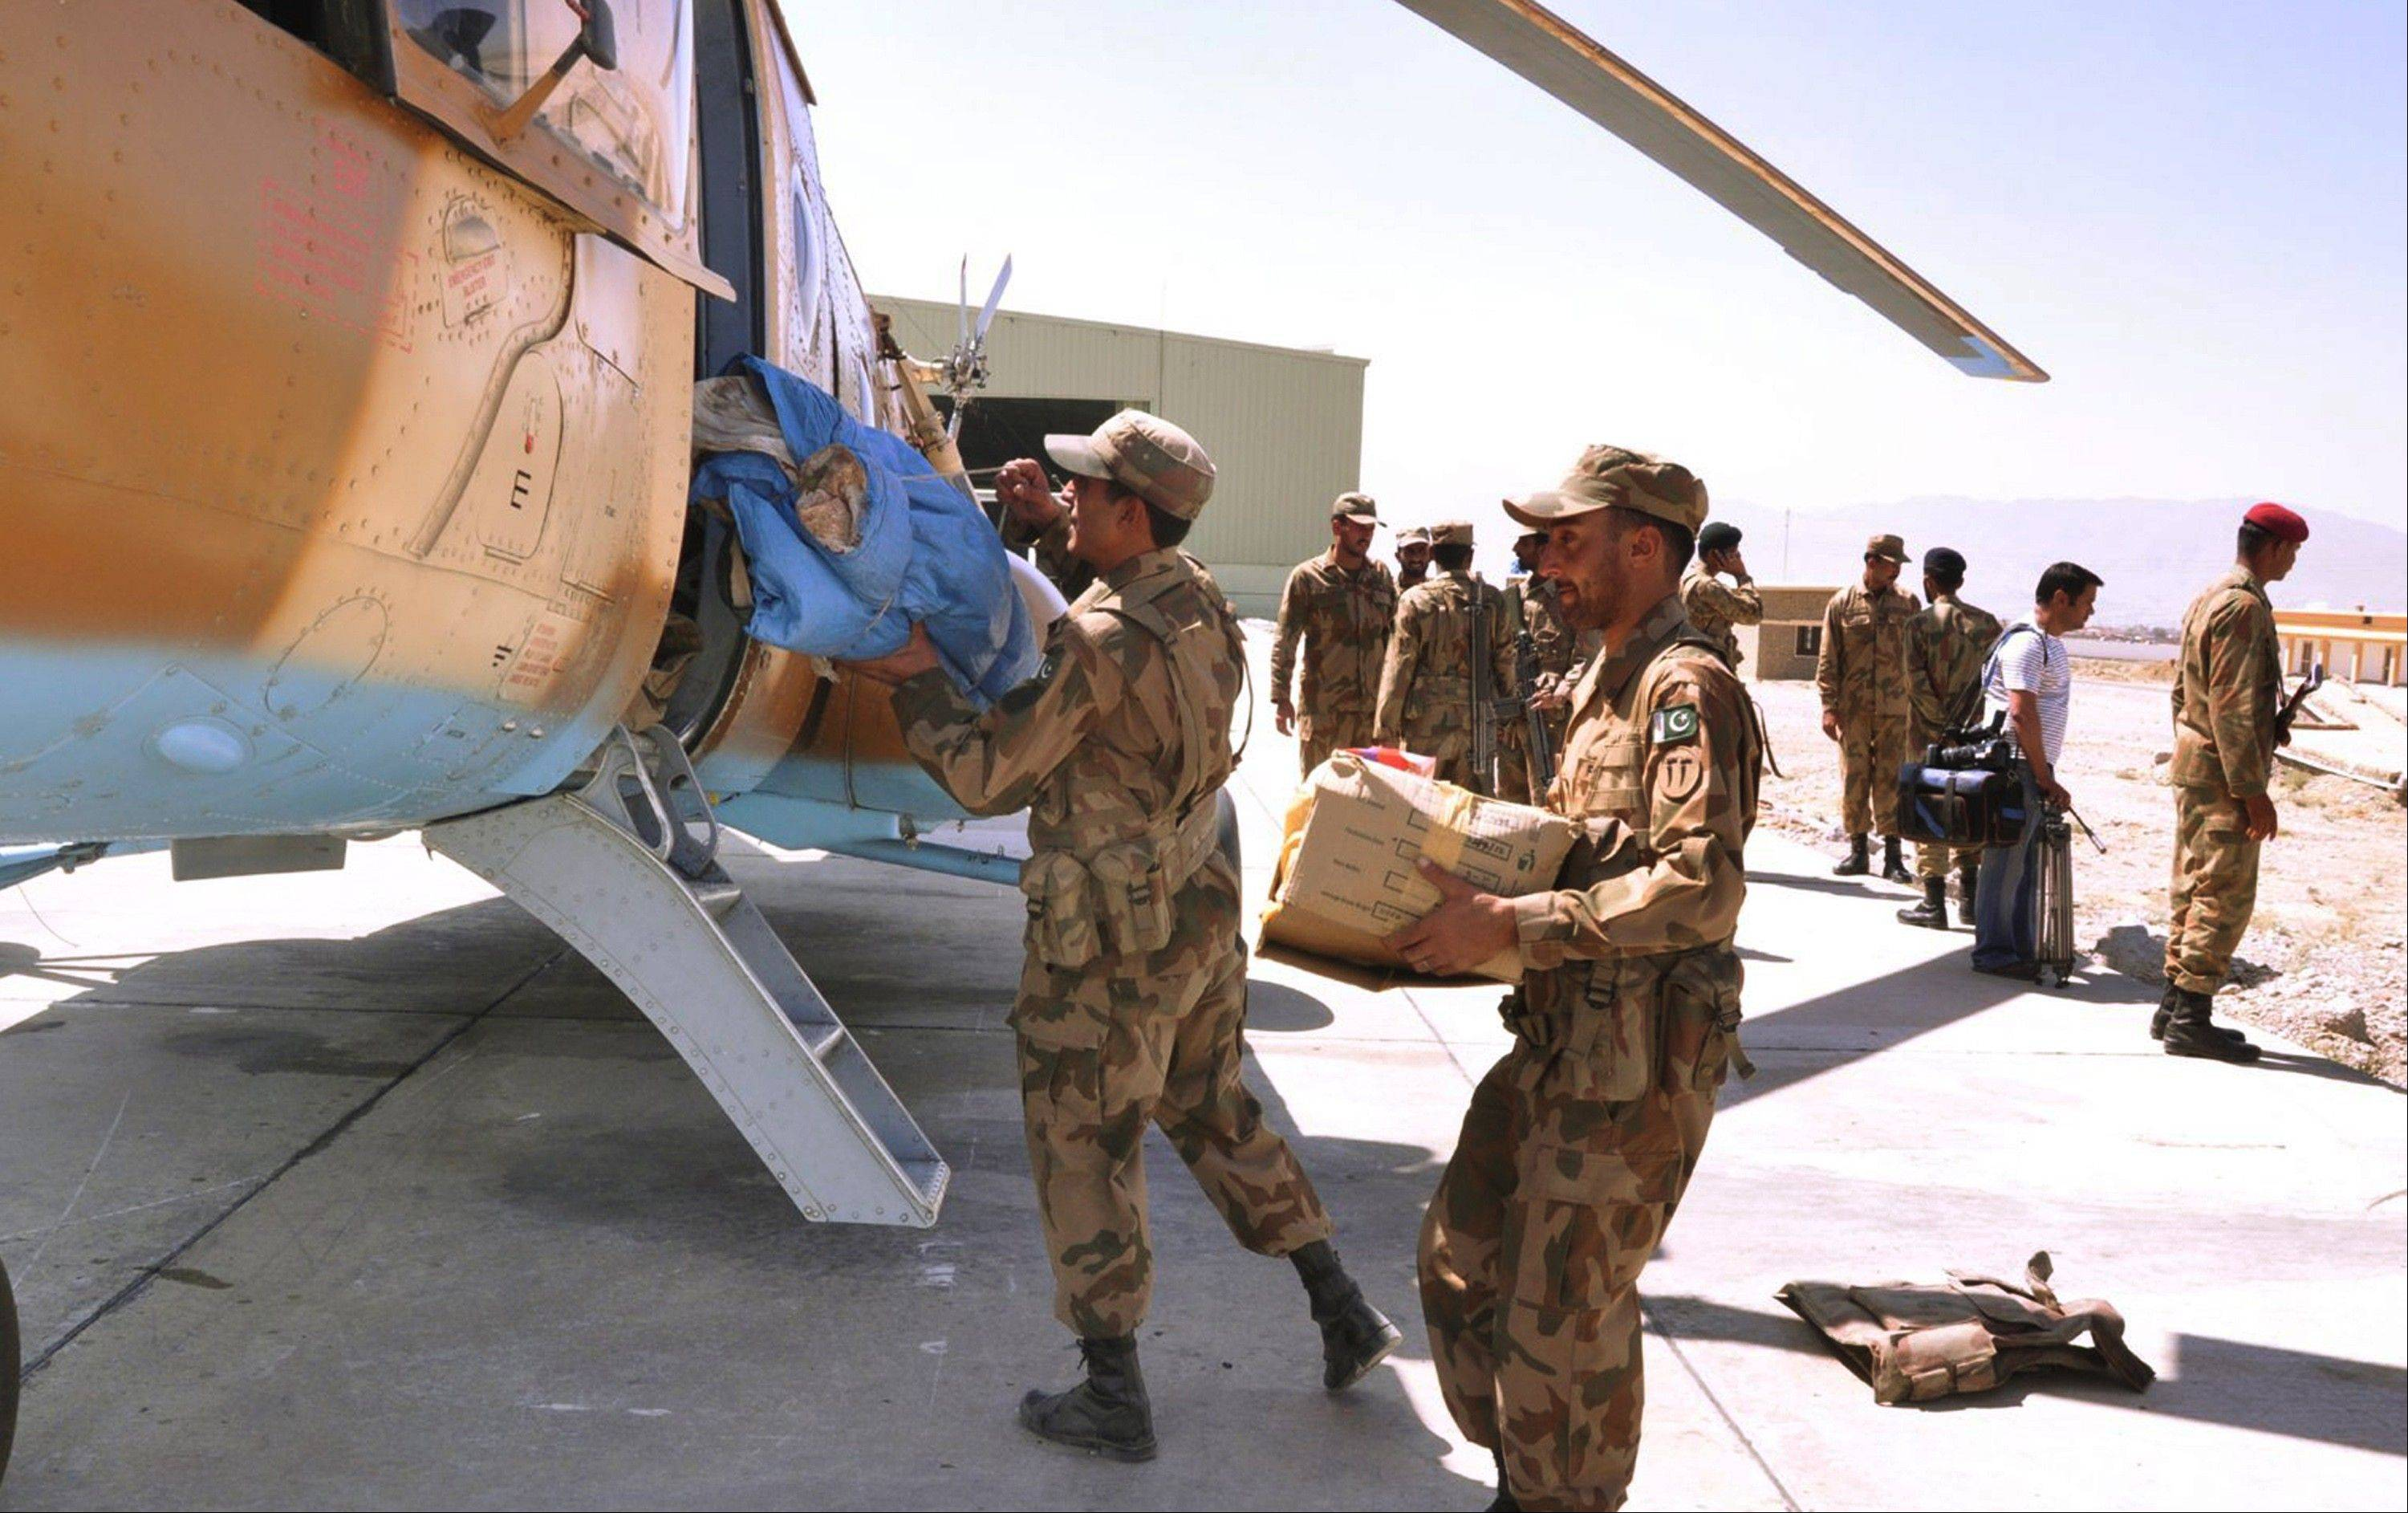 Pakistan army troops load relief goods for earthquake-affected areas, in Rawalpindi, Pakistan, Wednesday, Sept. 25, 2013. Rescuers struggled Wednesday to help thousands of people injured and left homeless after their houses collapsed in a massive earthquake in southwestern Pakistan Tuesday, Sept. 24, 2013, as the death toll rose to hundreds.